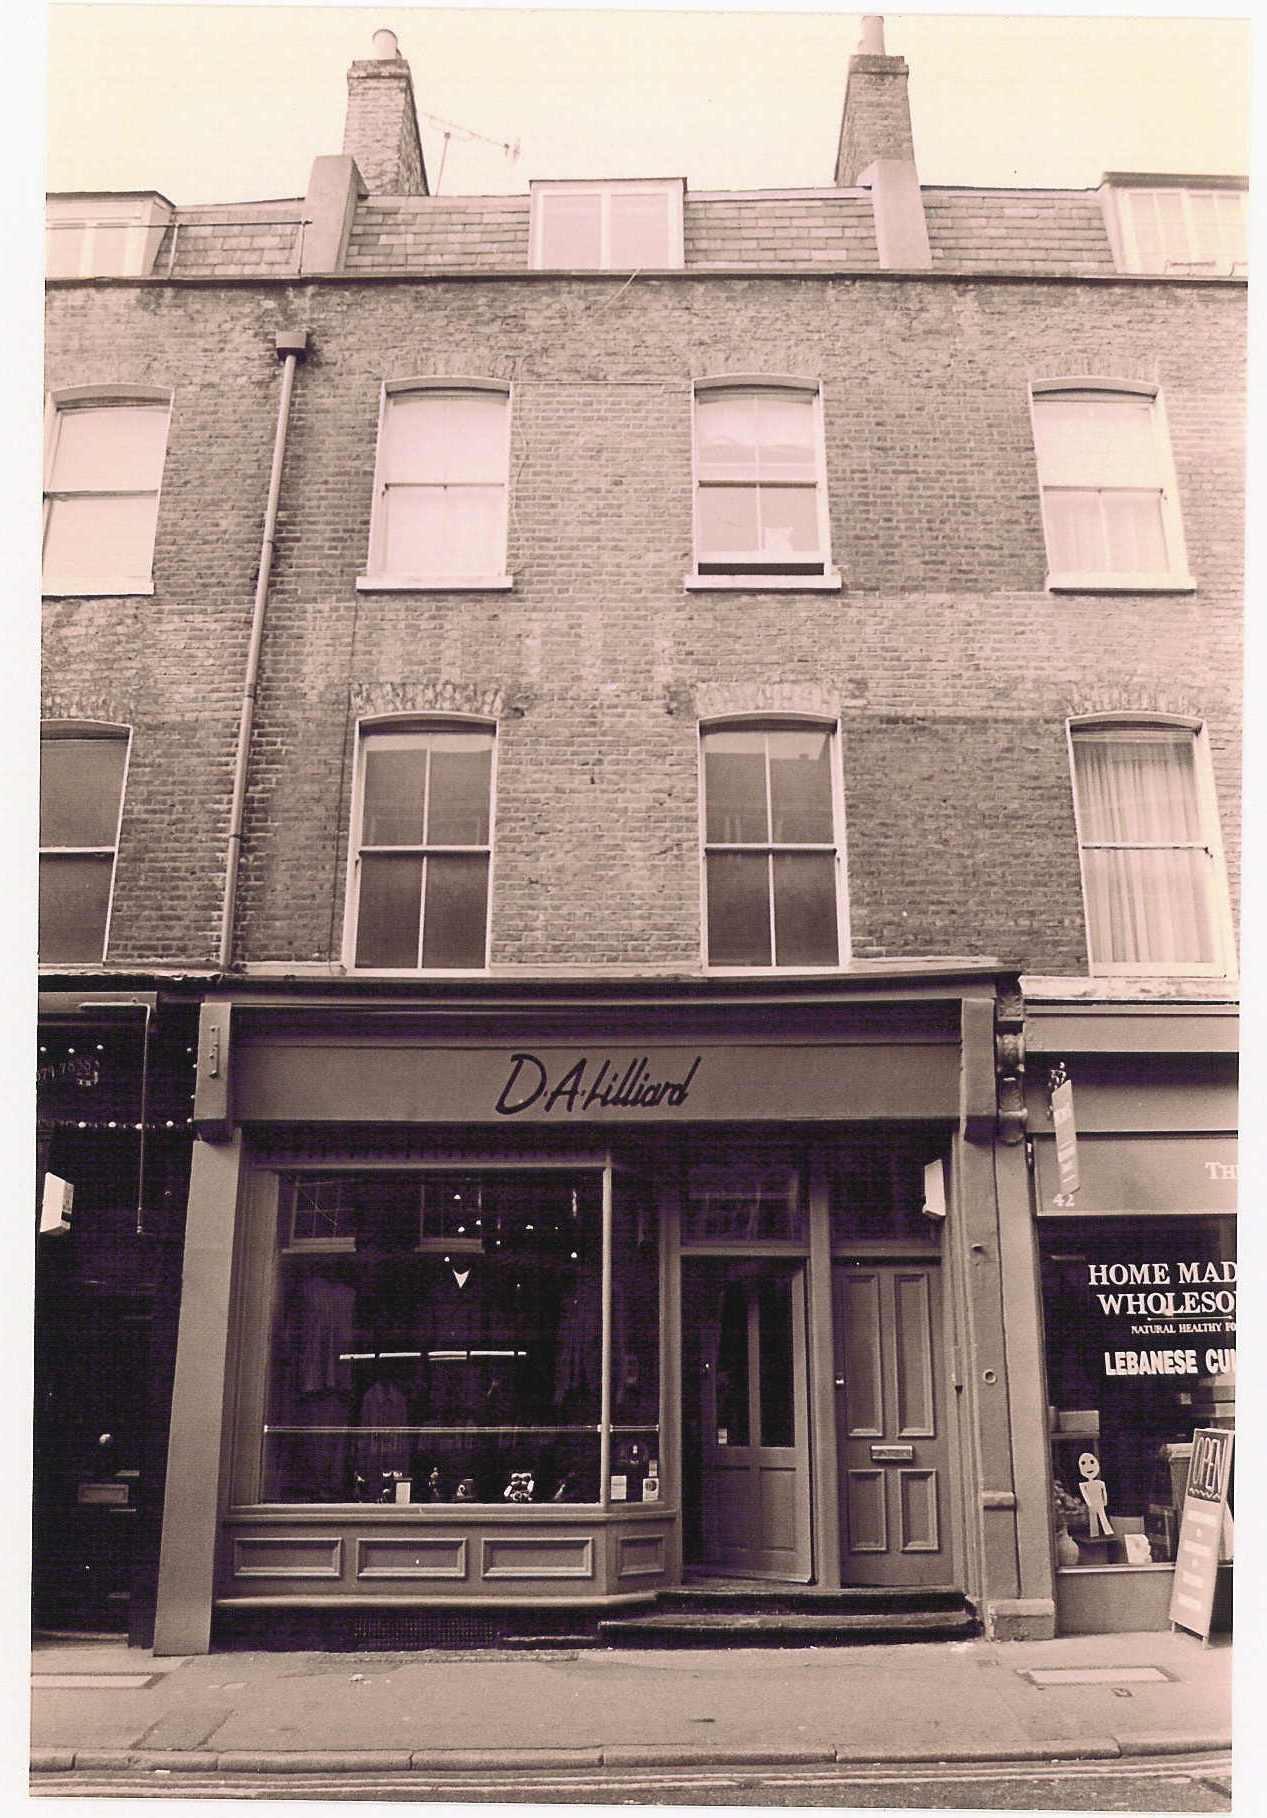 44 Monmouth Street c 1990, before restoration.